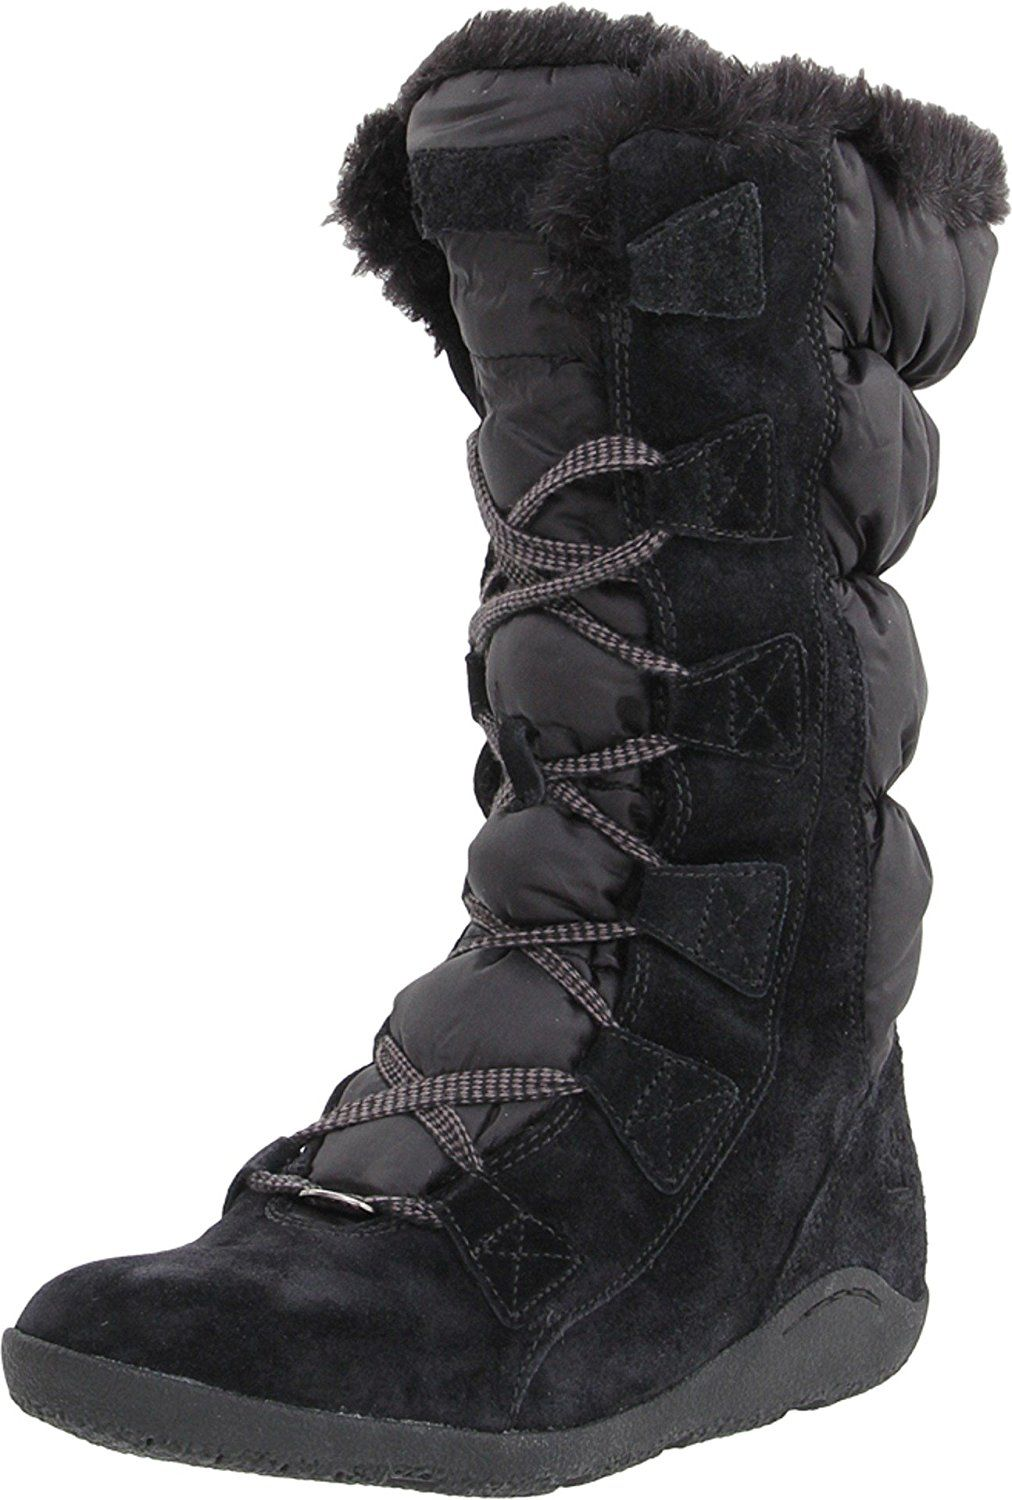 Timberland Women s Parkin Lace-Up Boot   See this awesome image   Timberland  boots 94b77fdef3